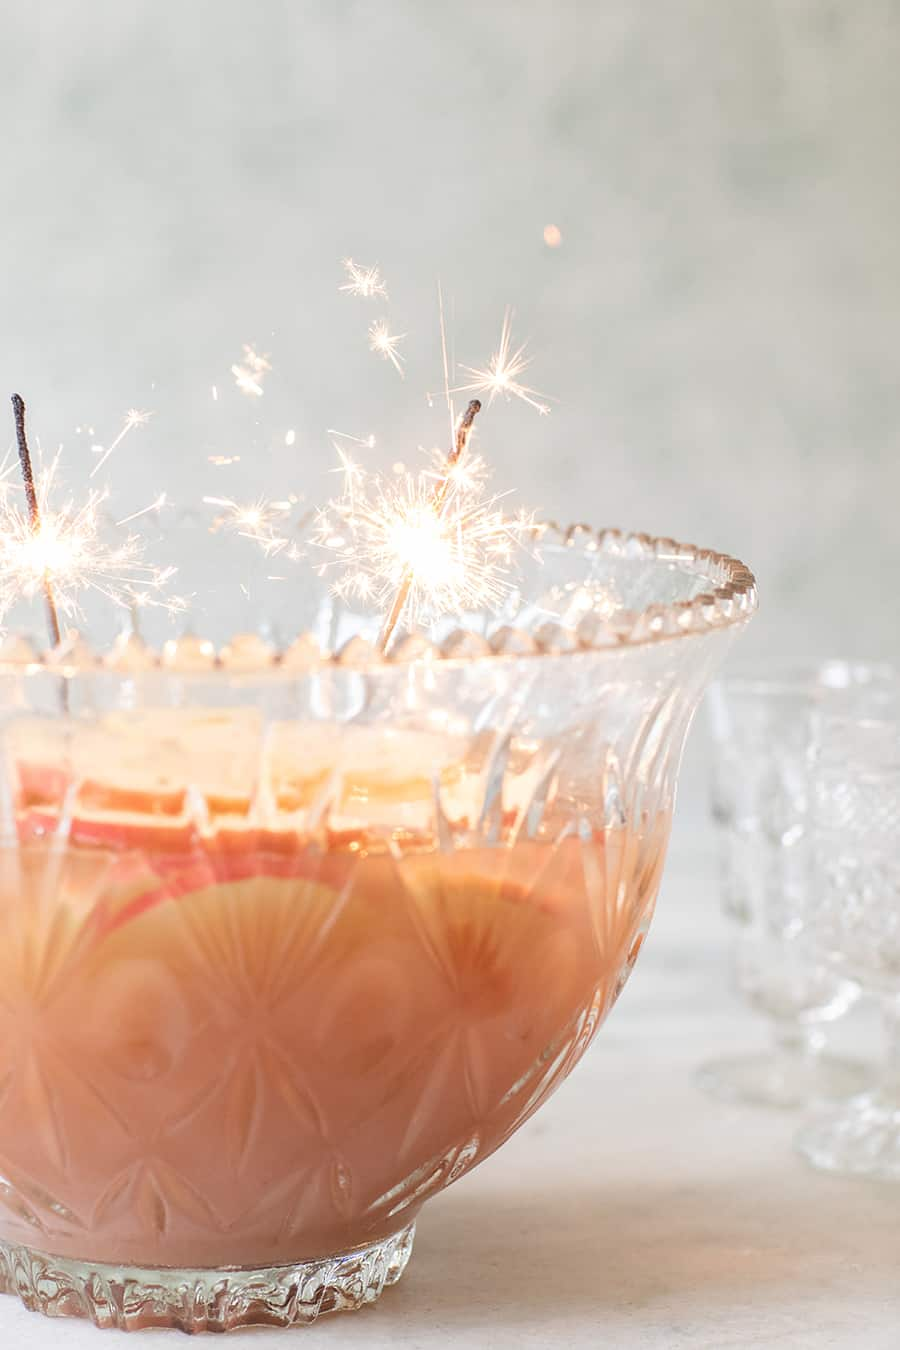 Holiday punch in a punch bowl with sparklers.